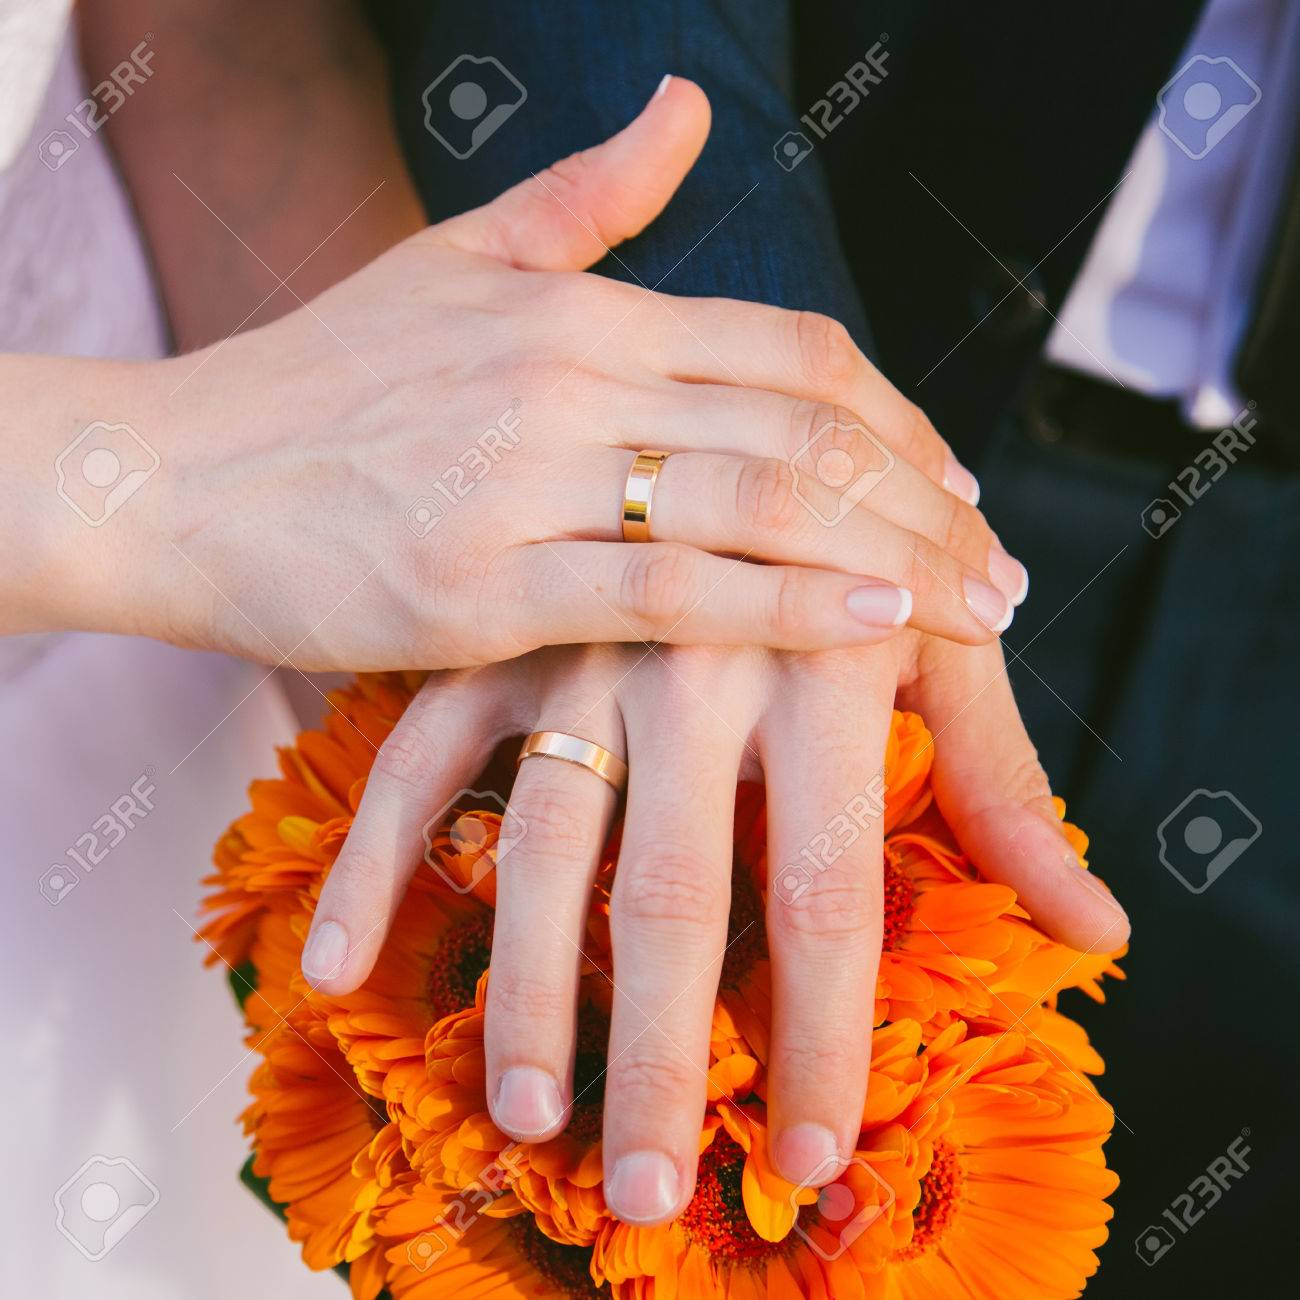 Brides And Grooms Hands With Wedding Rings On Fingers Over Wedding ...